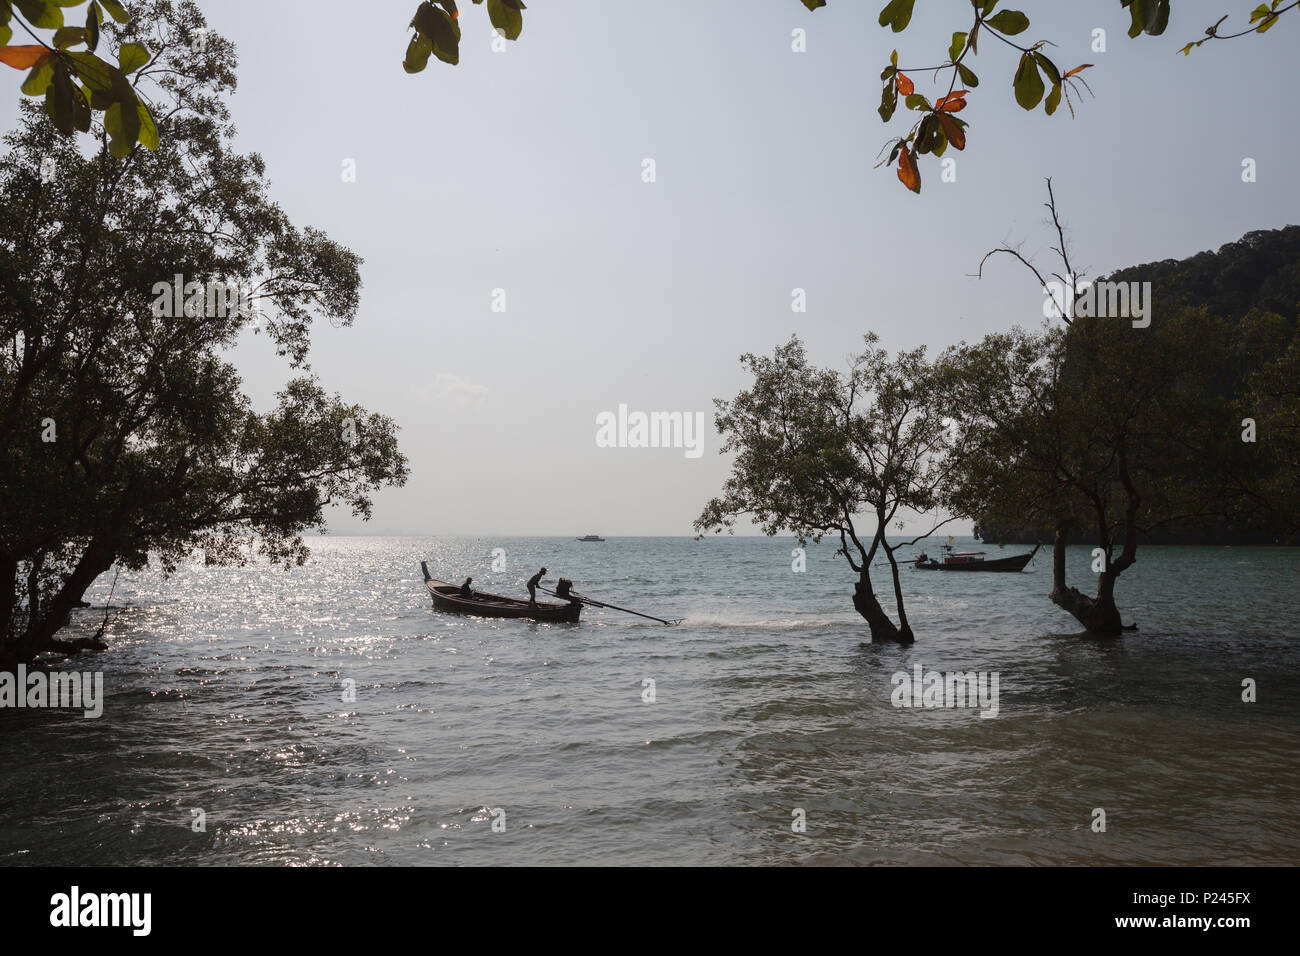 Evening landscape with mangroves. Province of Krabi. Thailand - Stock Image